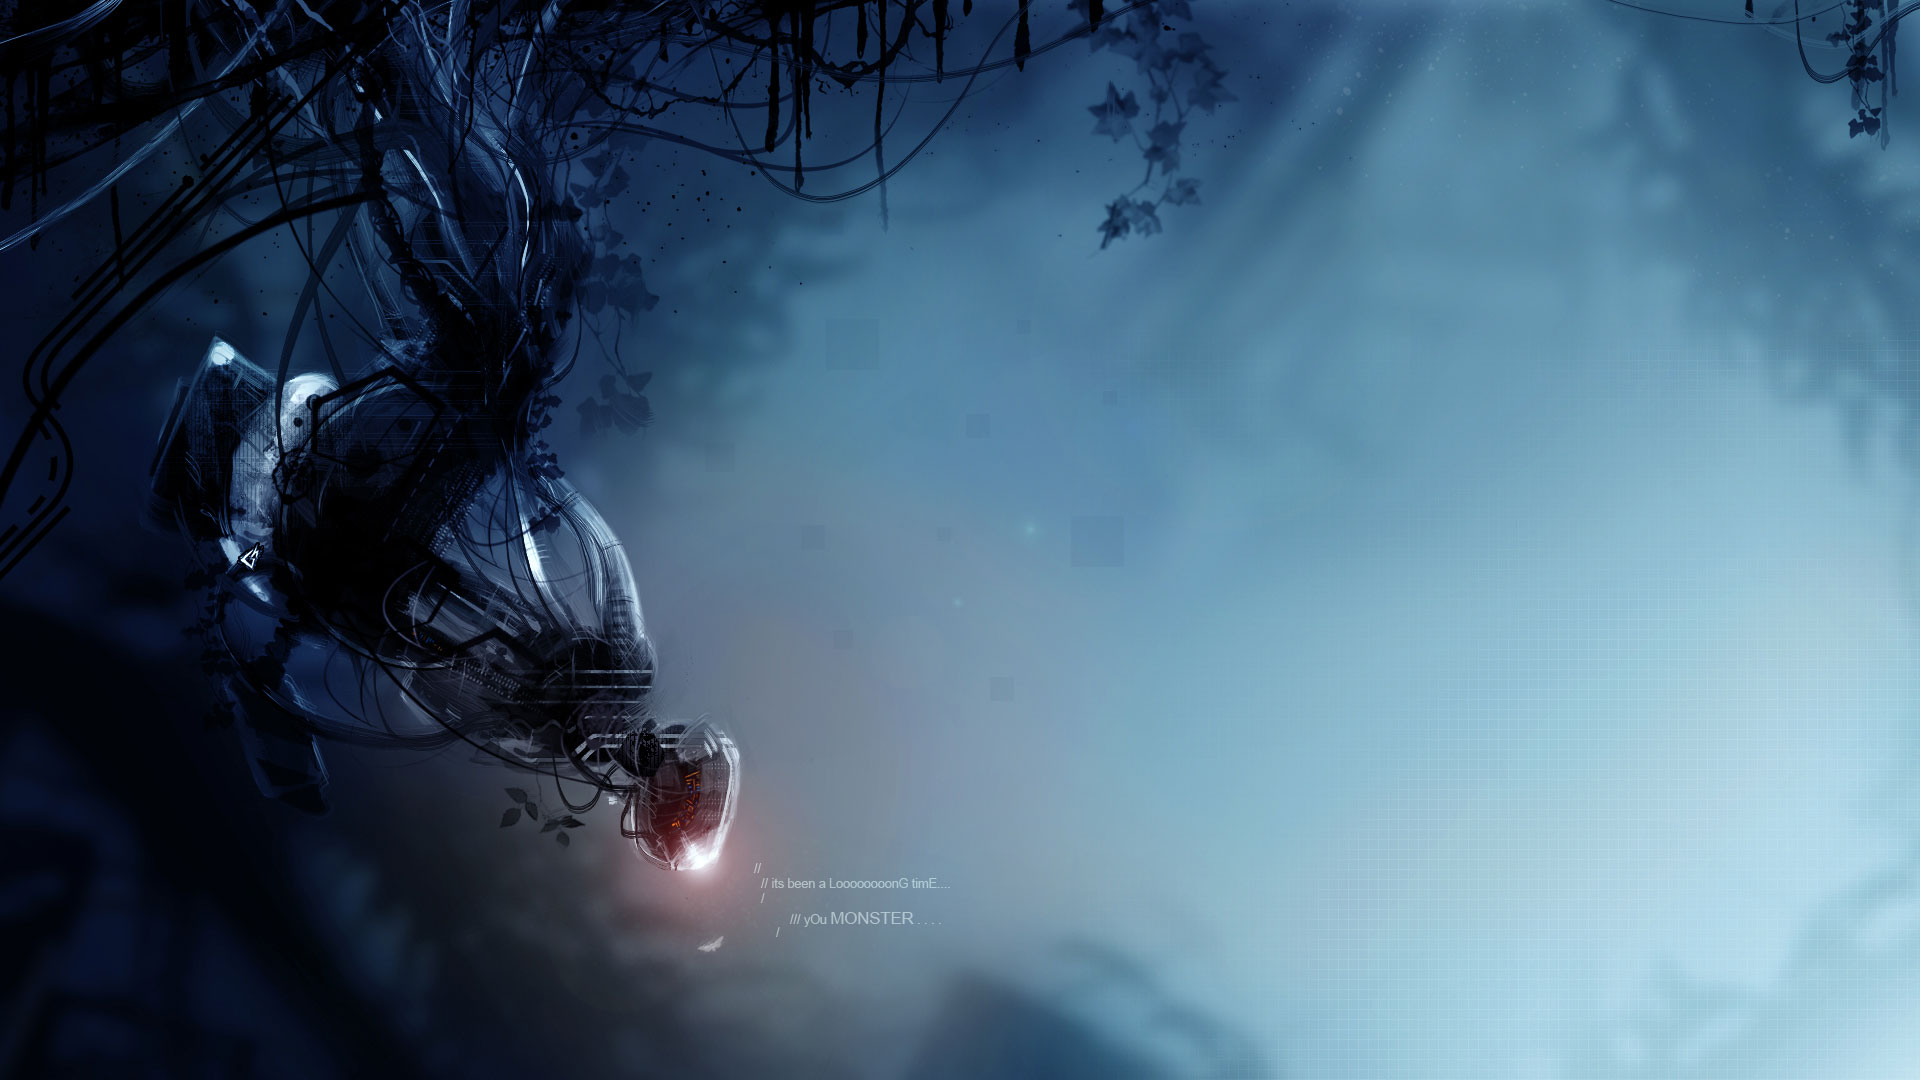 Portal 2 Wallpapers in HD High Resolution Page 2 1920x1080